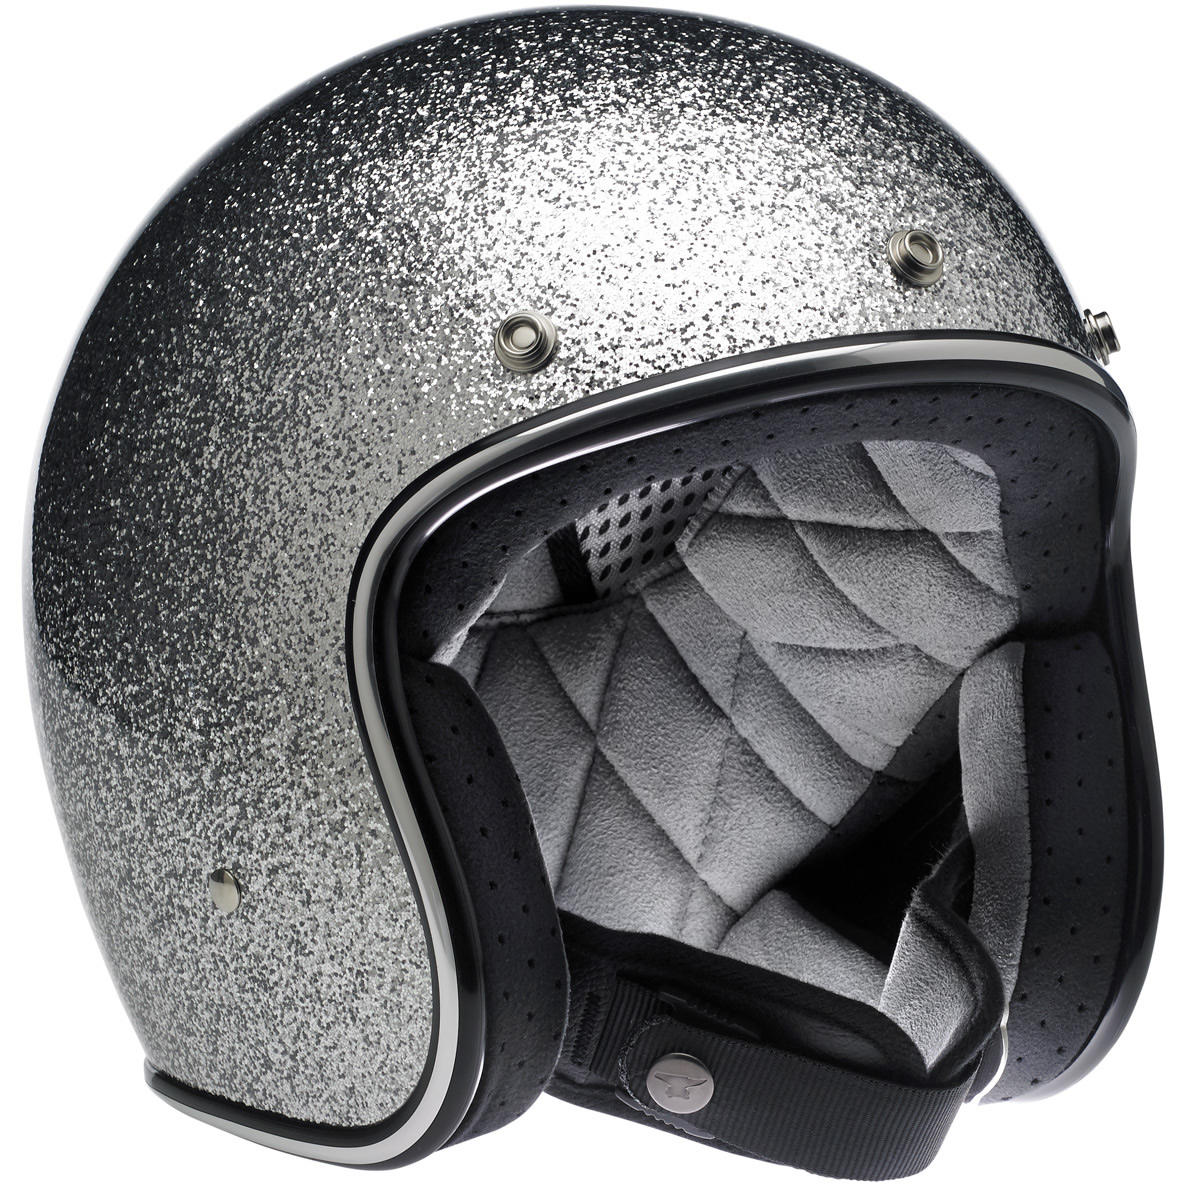 Biltwell BONANZA Motorcycle Helmet 3/4 Open Face XS-2XL FREE Expedited Shipping